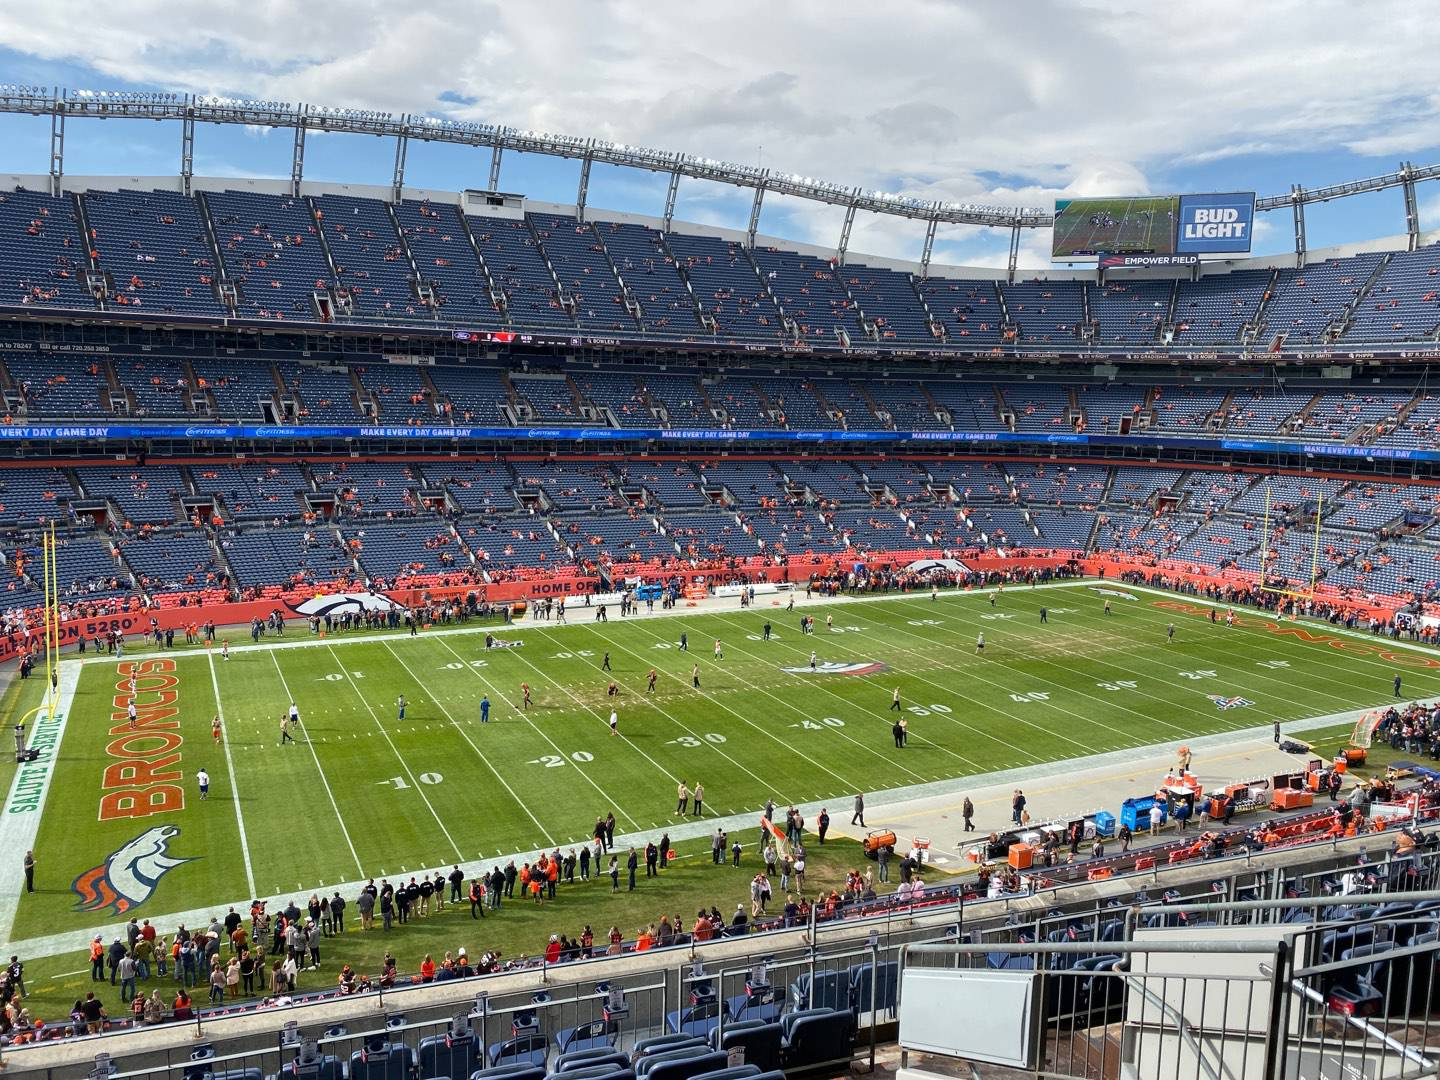 Empower Field at Mile High Stadium Section 342 Row 12 Seat 7